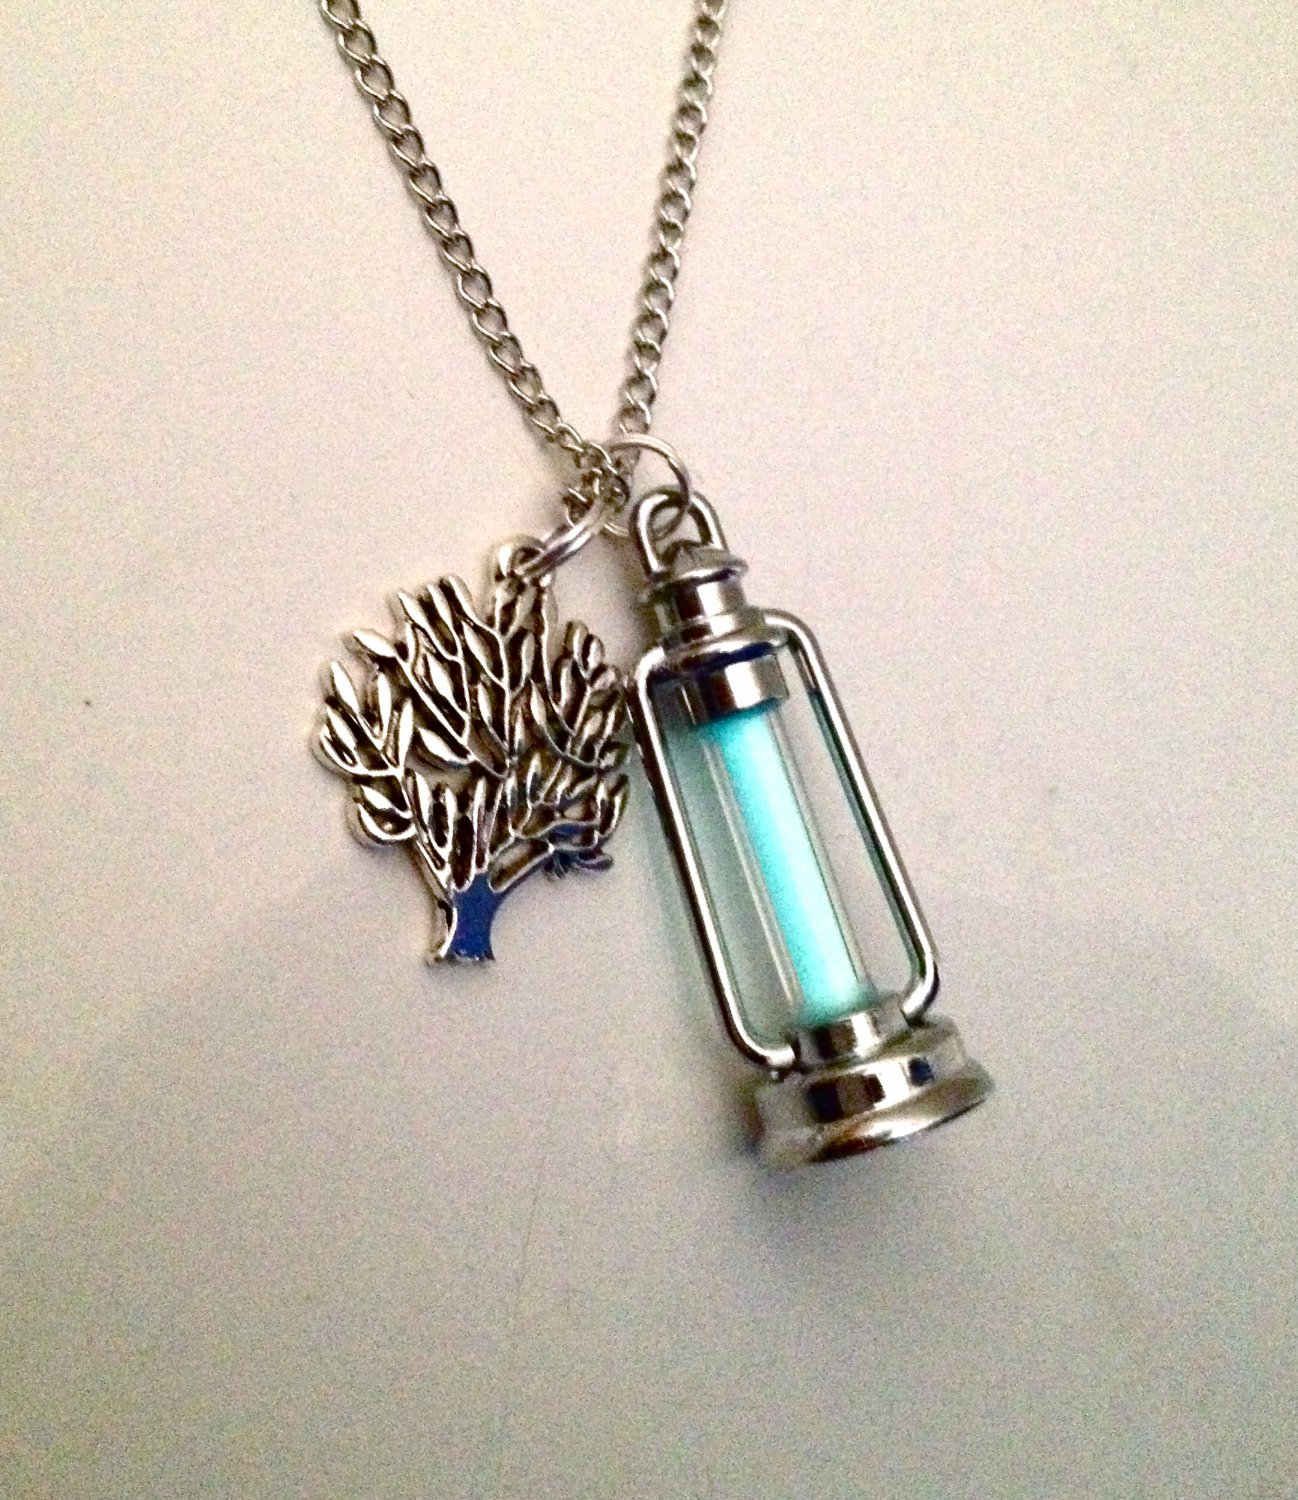 Glow in the Dark Pendant & Tree Charm Necklace.